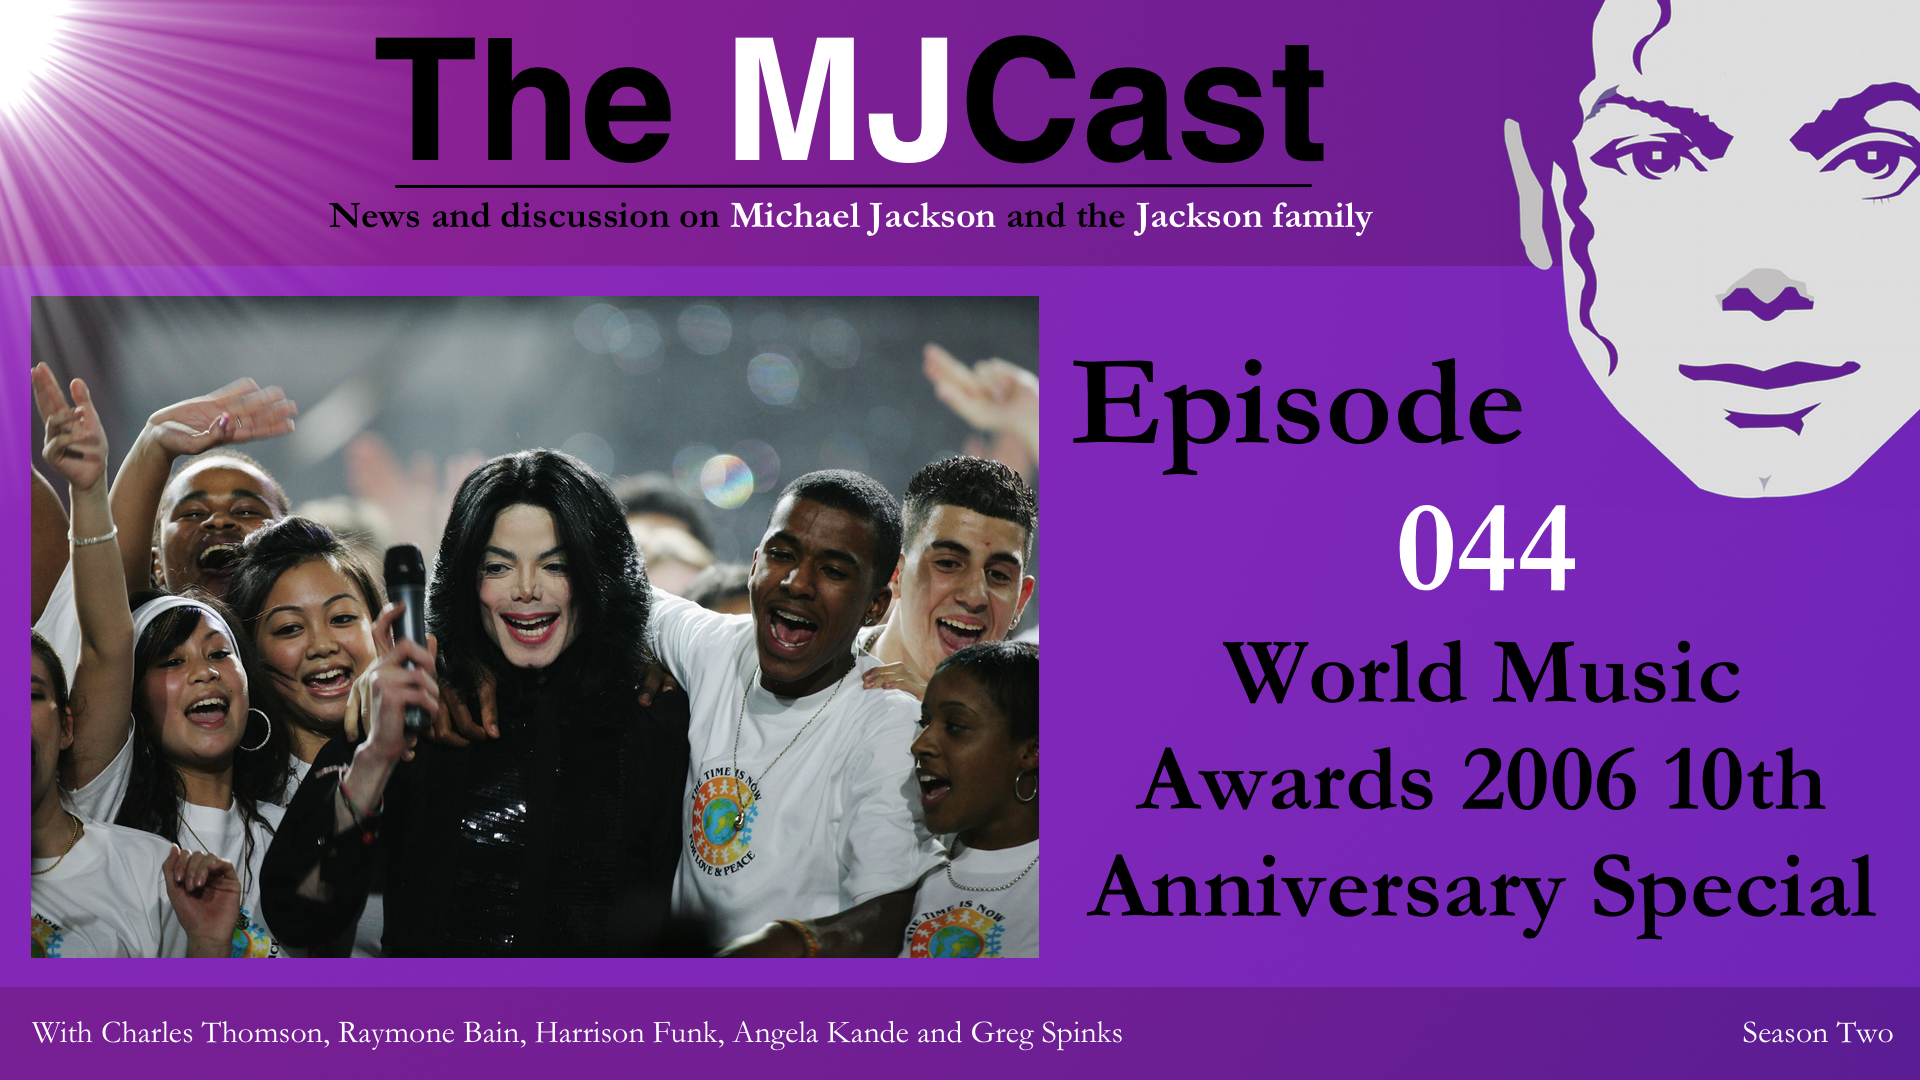 episode-044-world-music-awards-2006-10th-anniversary-special-show-art